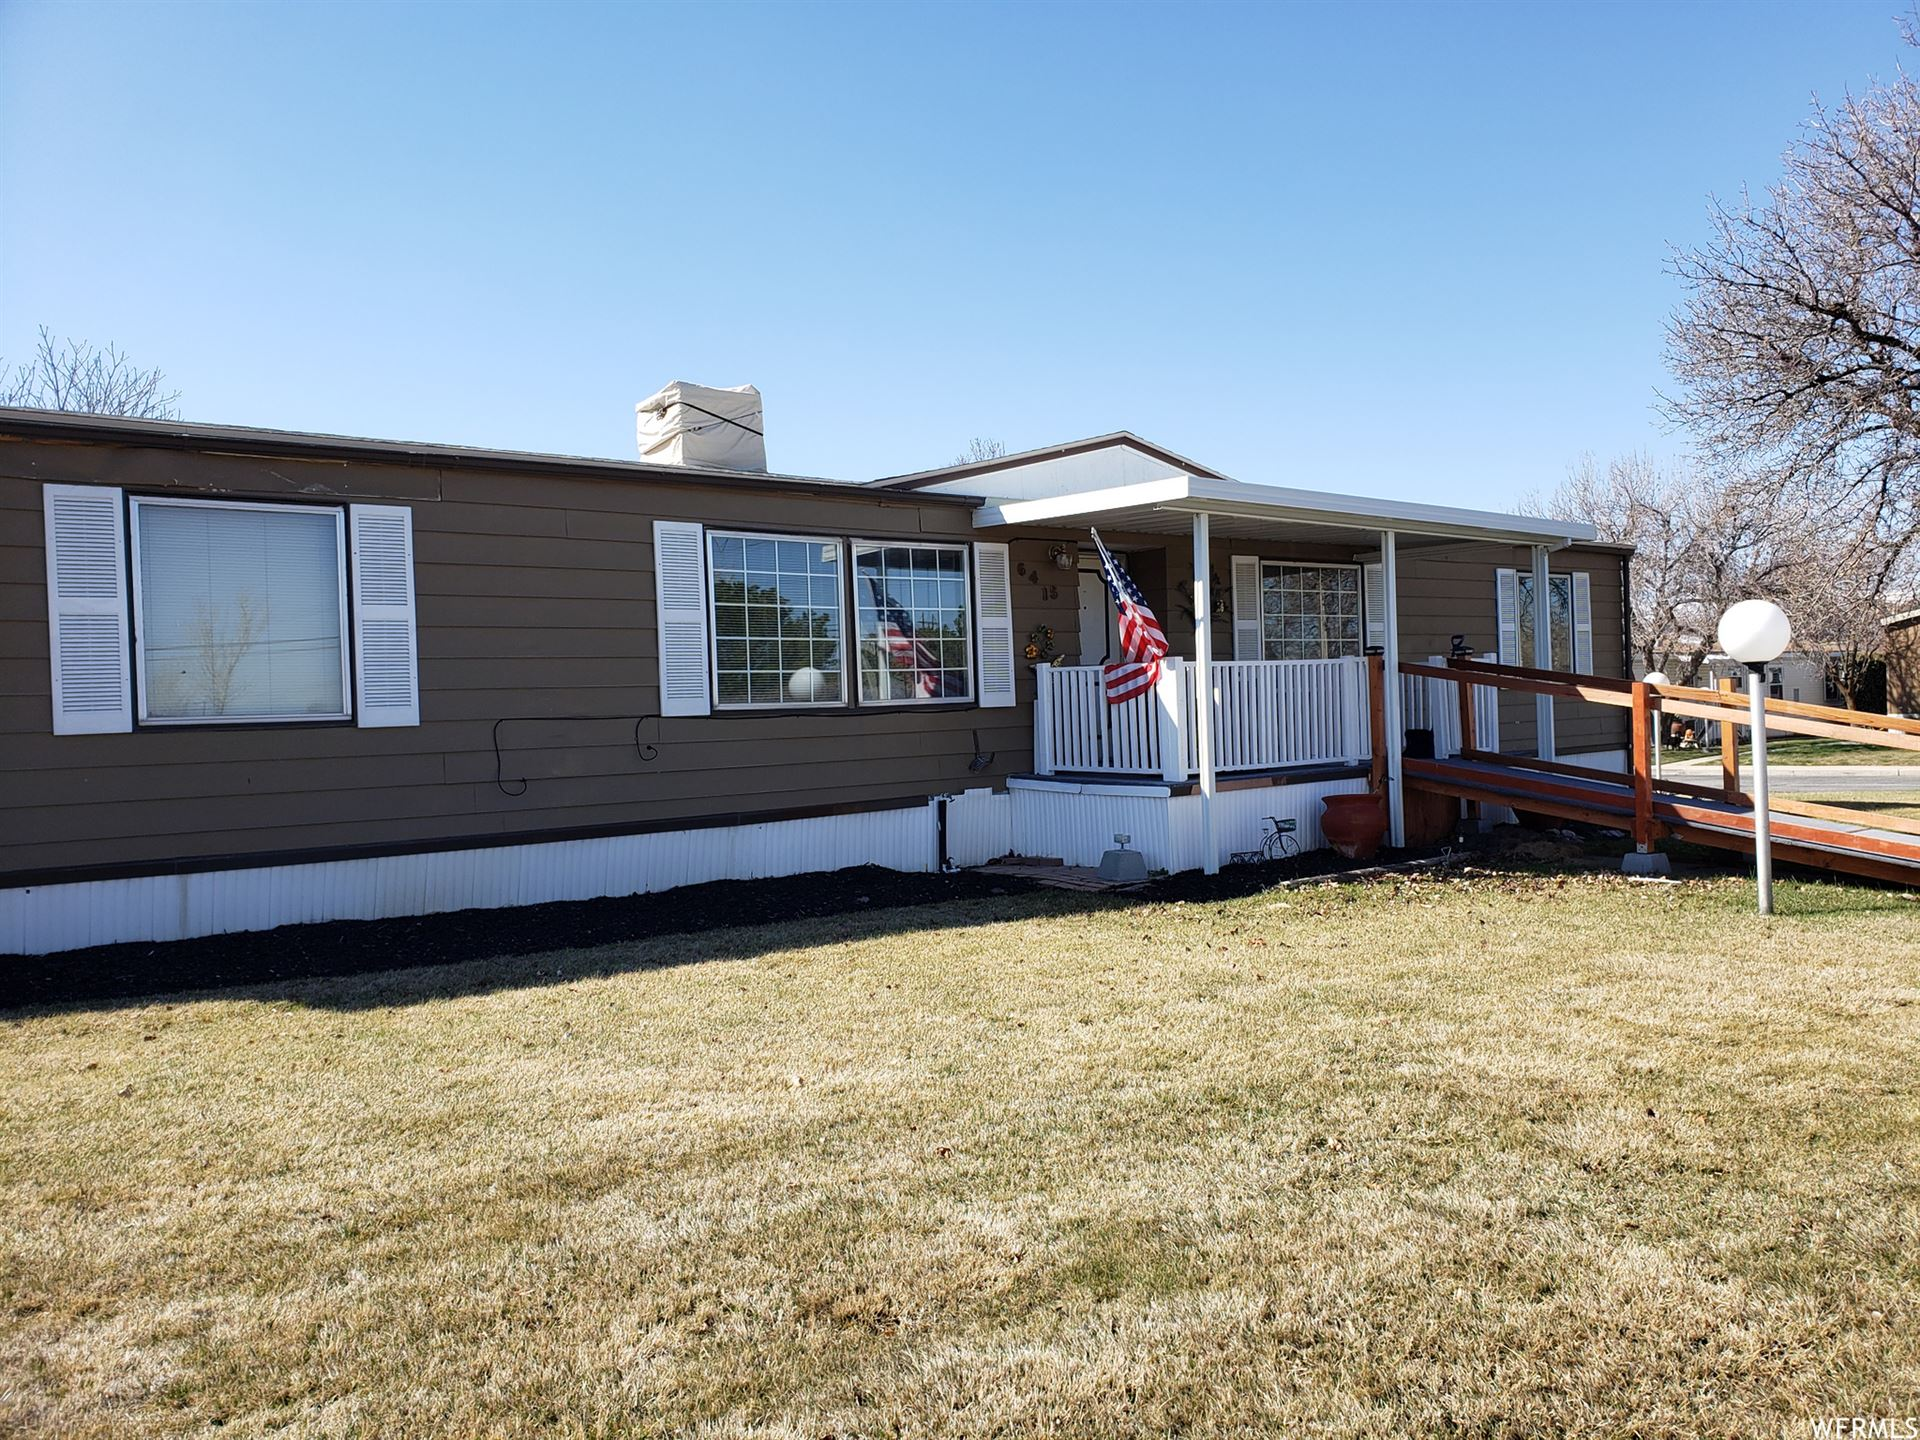 Photo of 6415 S 1140 W, Murray, UT 84123 (MLS # 1732915)